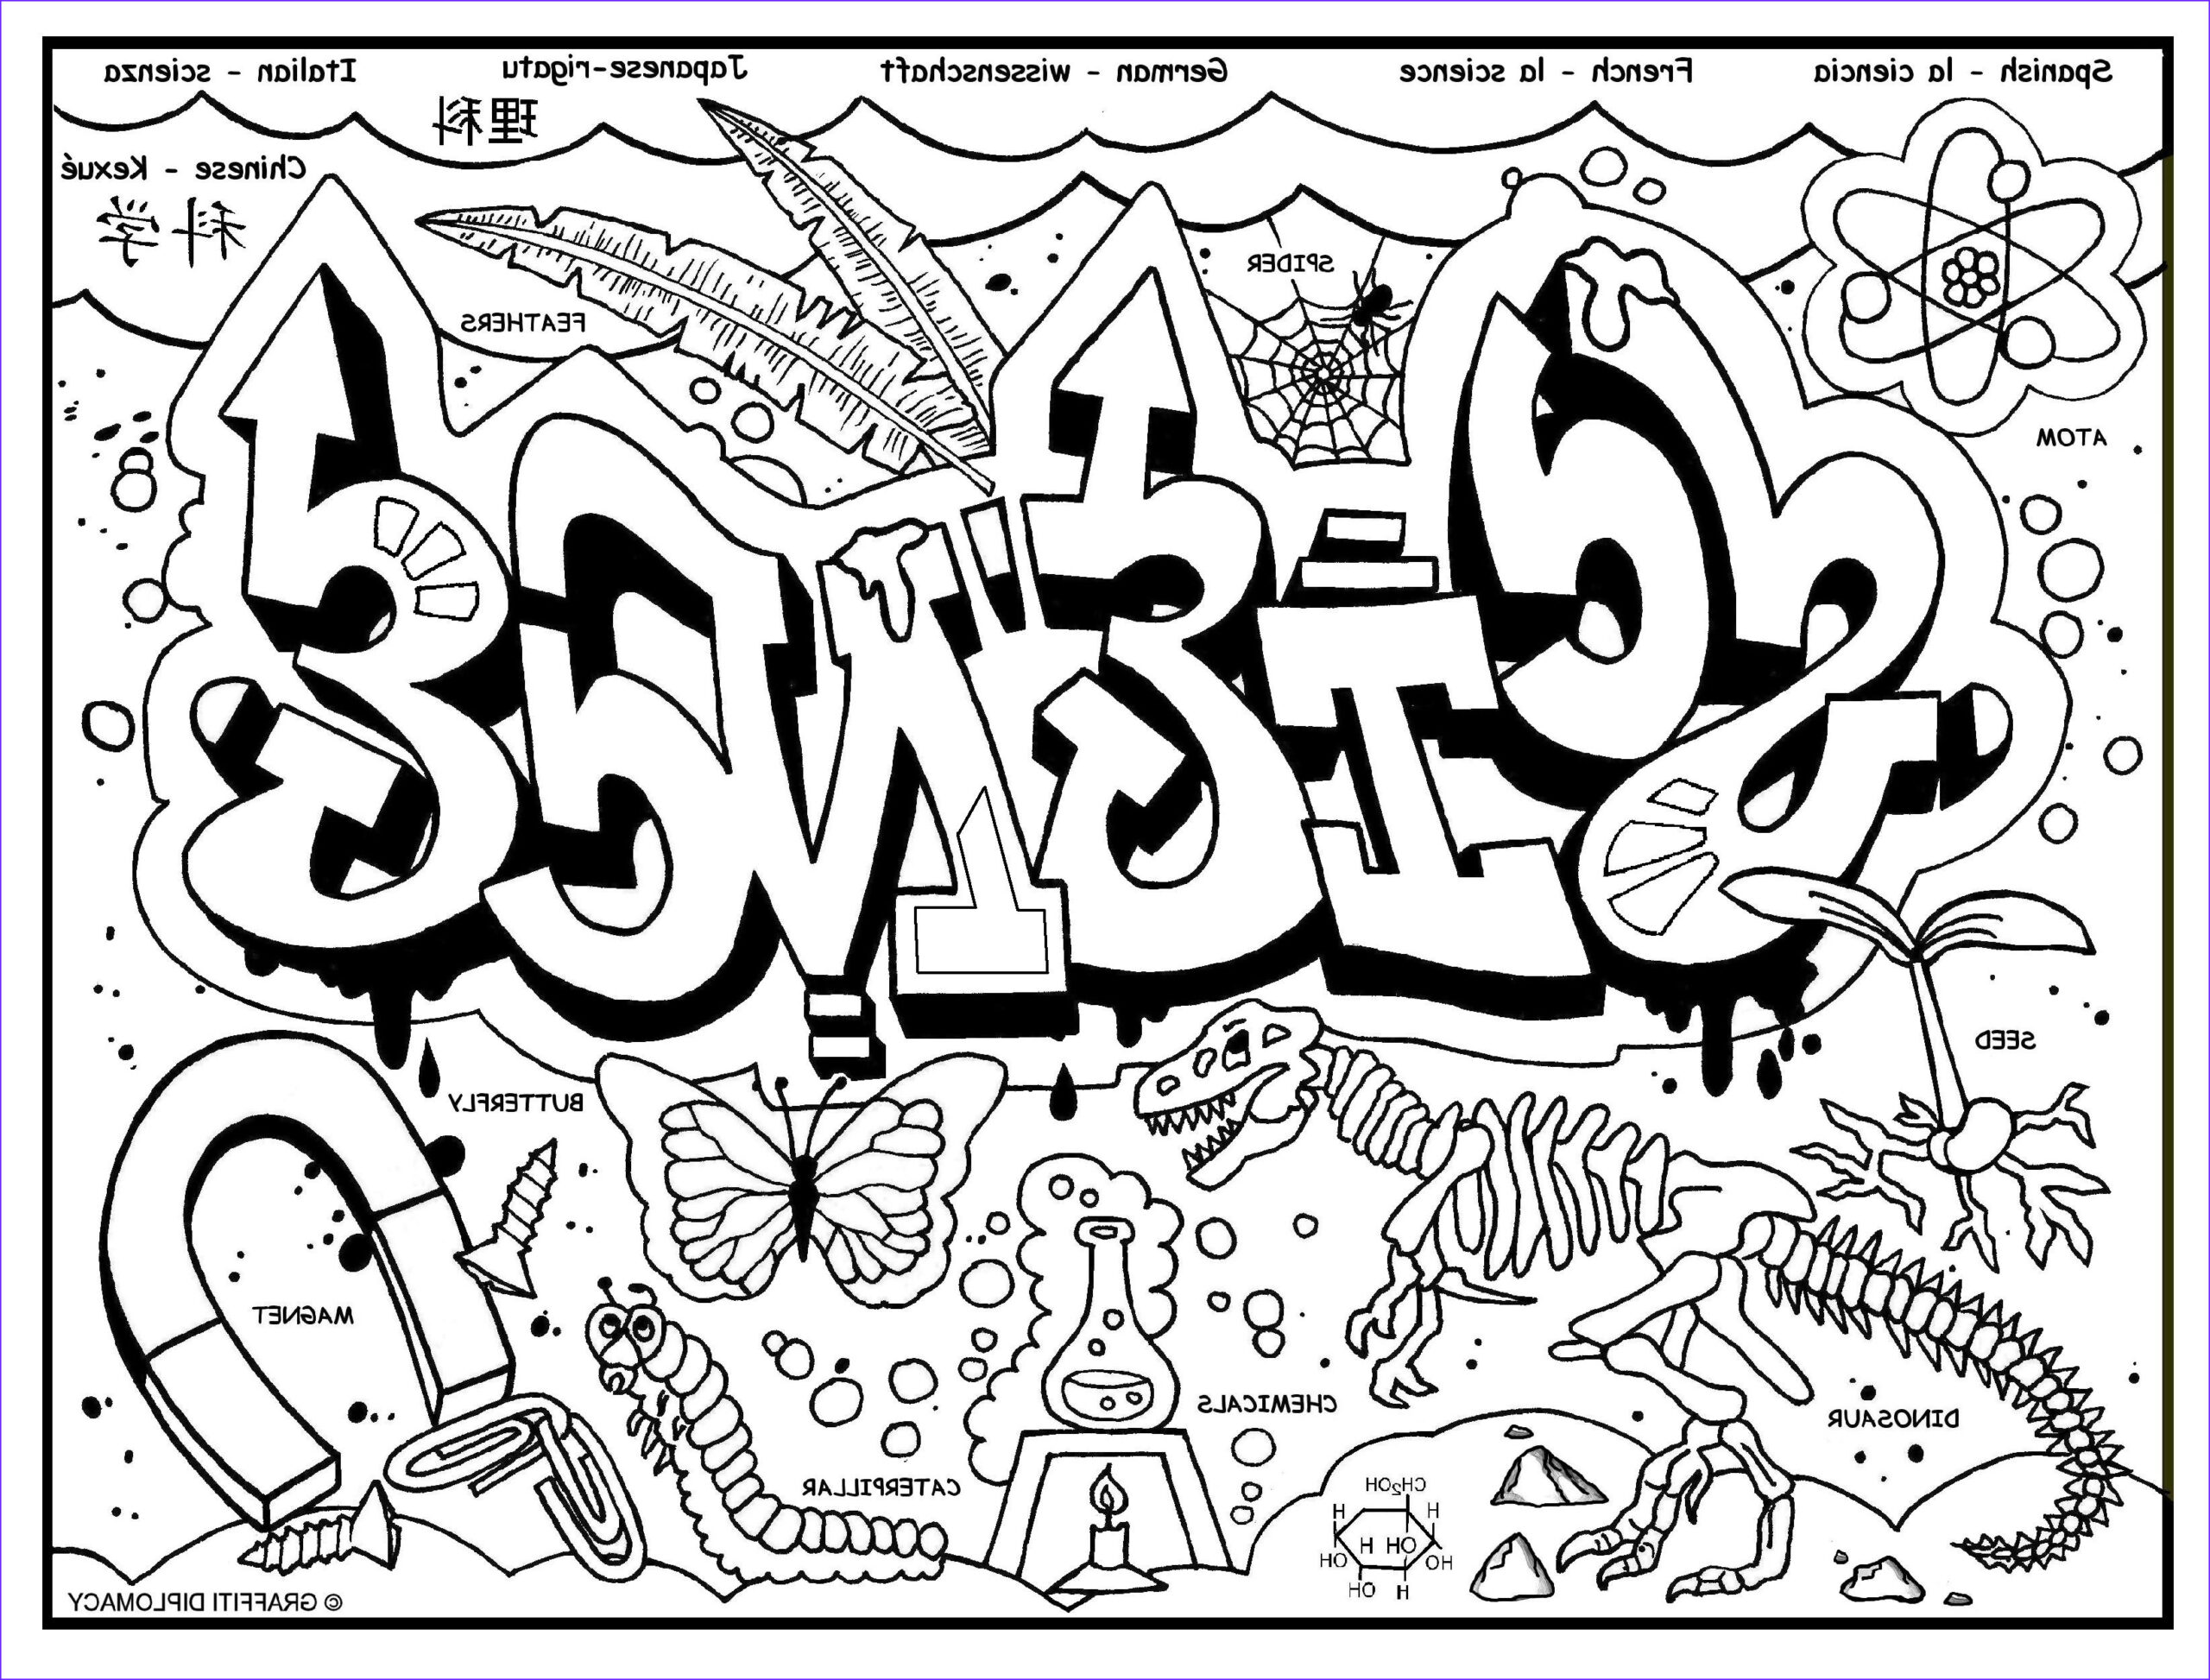 Science Coloring Pages Inspirational Photography Graffiti Diplomacy Store